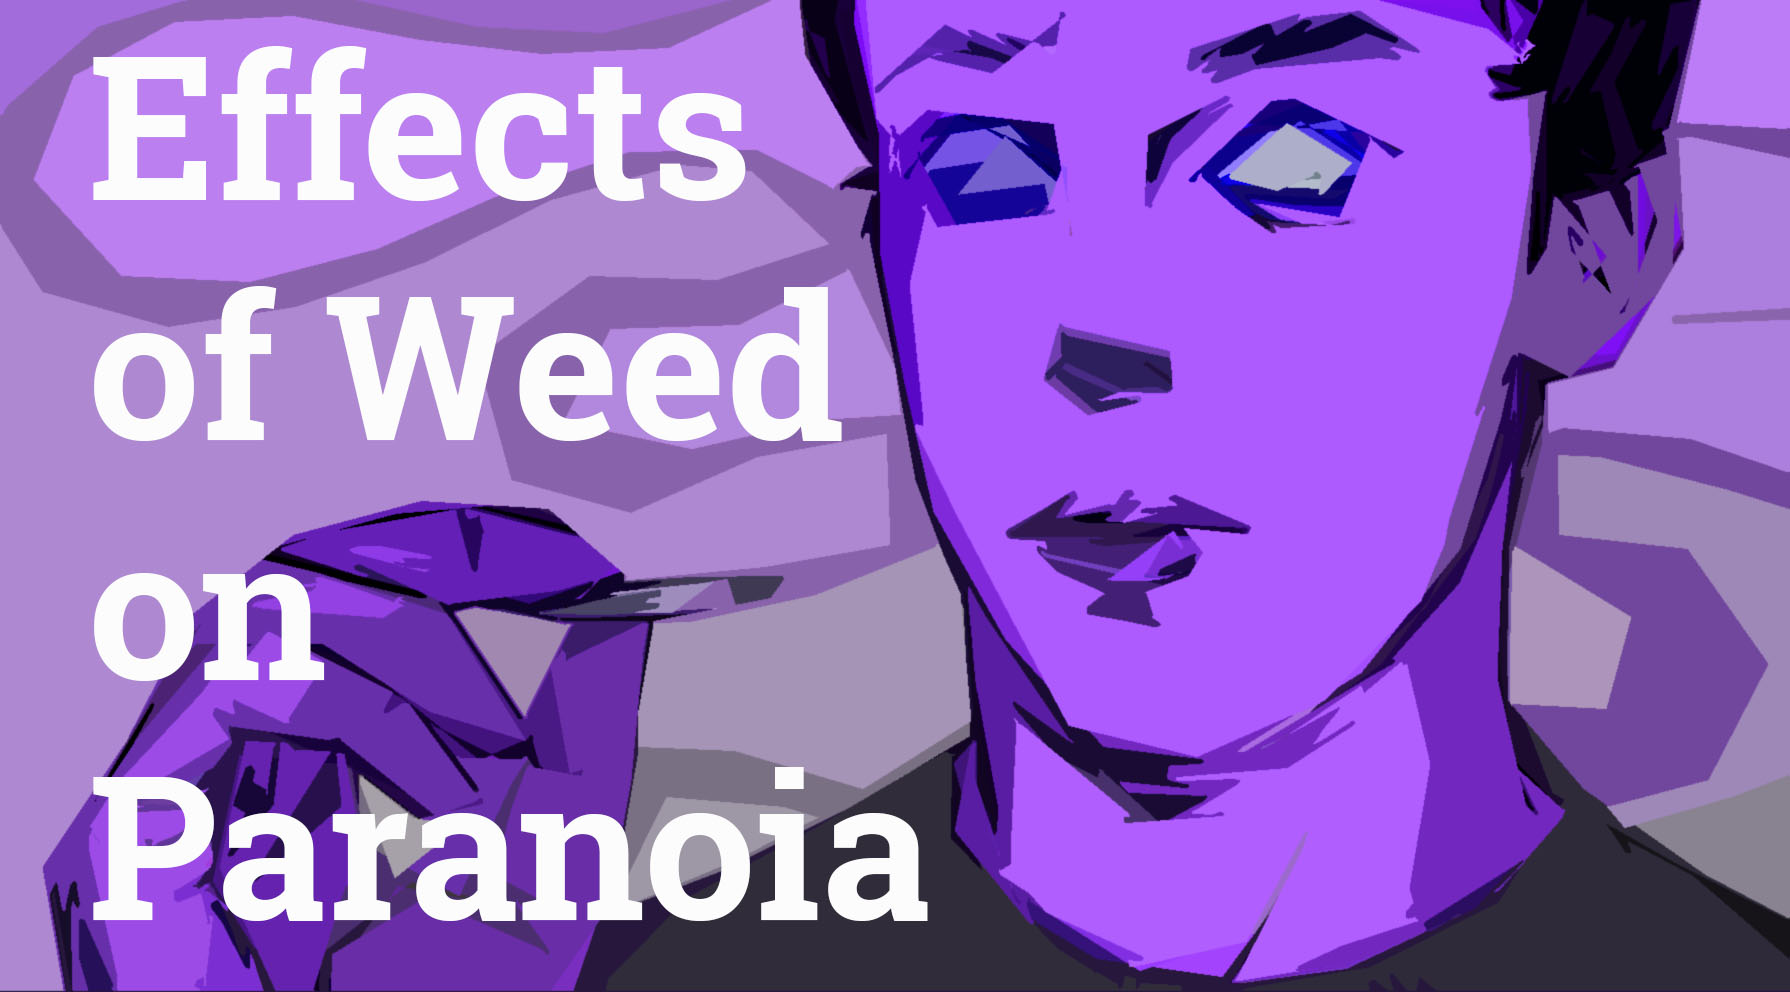 Effects of Weed on paranoid Does Weed cannabis make paranoia worse best coffeeshop amsterdam coffeeshops best friends